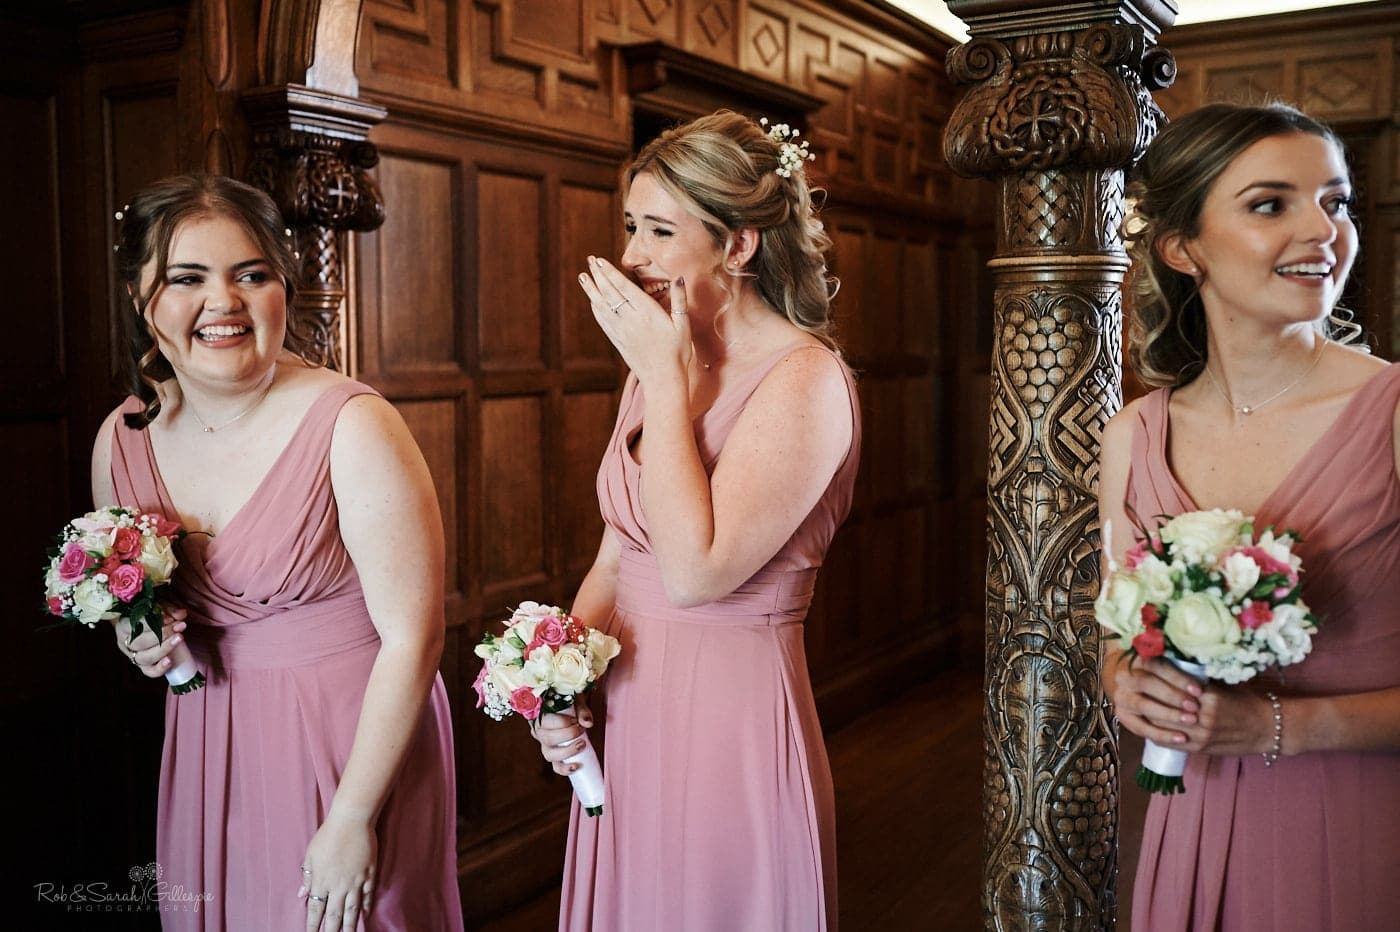 Bridesmaids laughing and emotional as bride makes her entrace